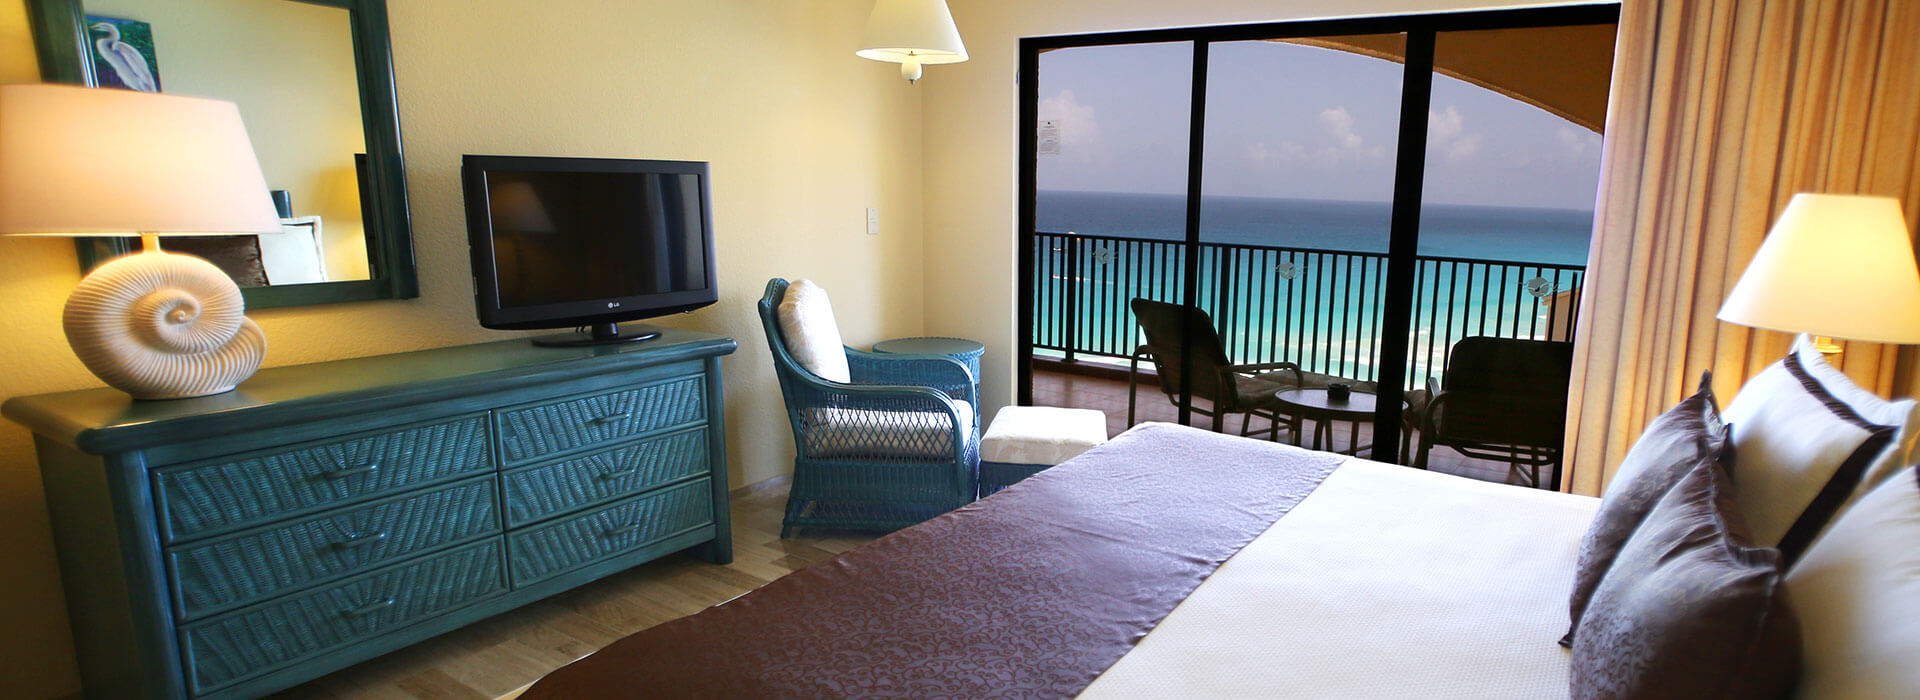 beach views in cancun resort suite